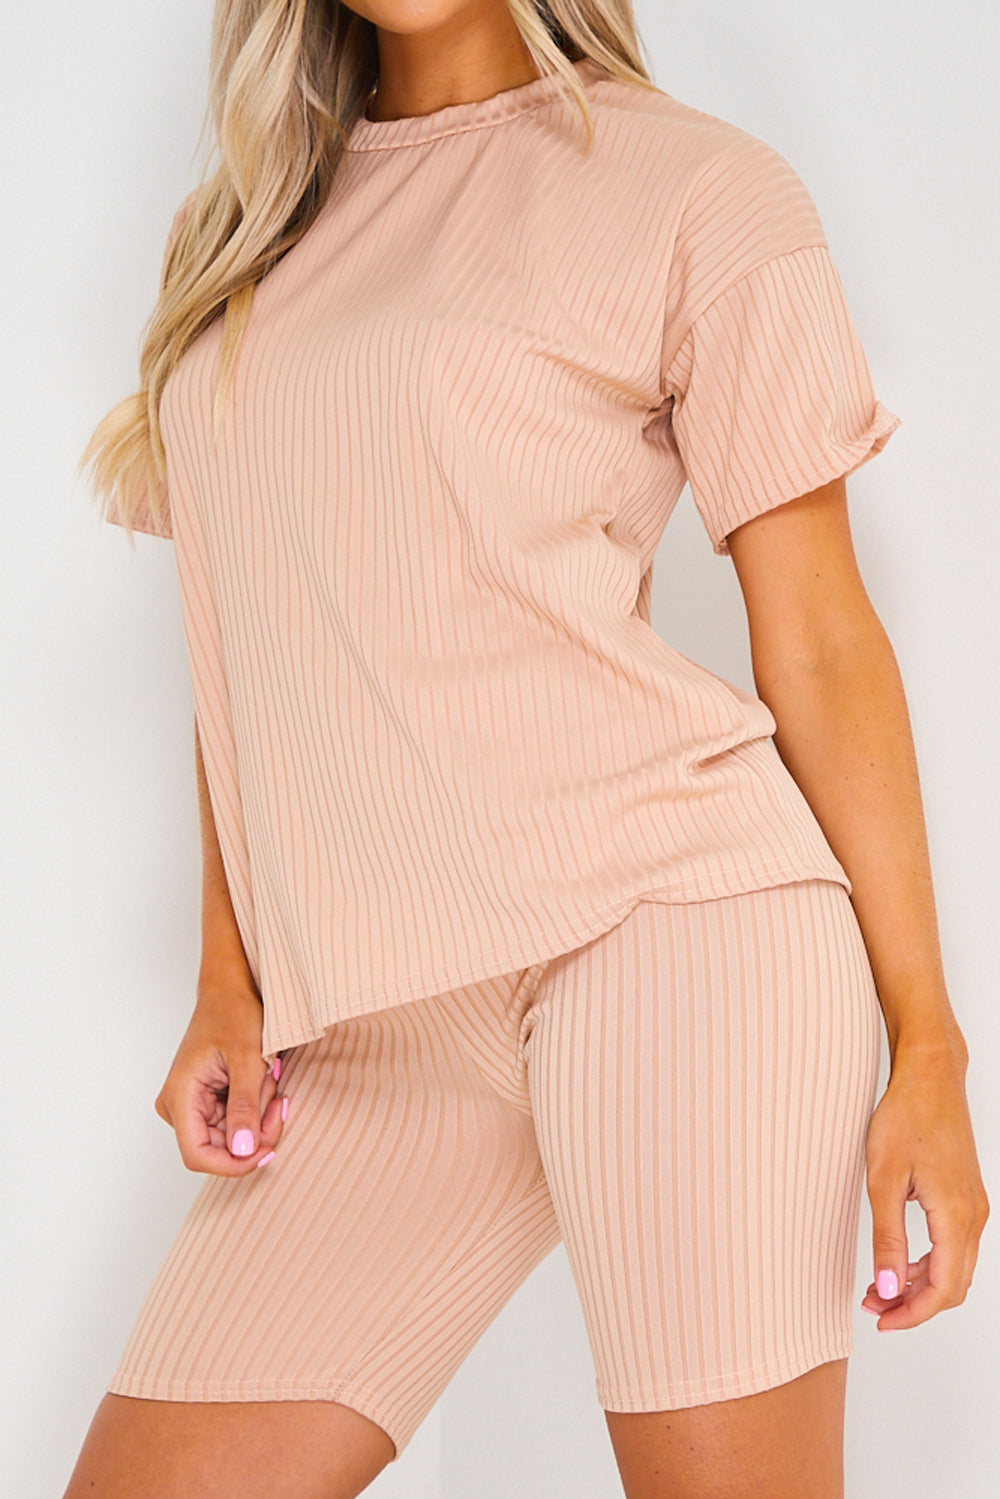 Camel Ribbed Oversized T-Shirt and Shorts Co-ord Set